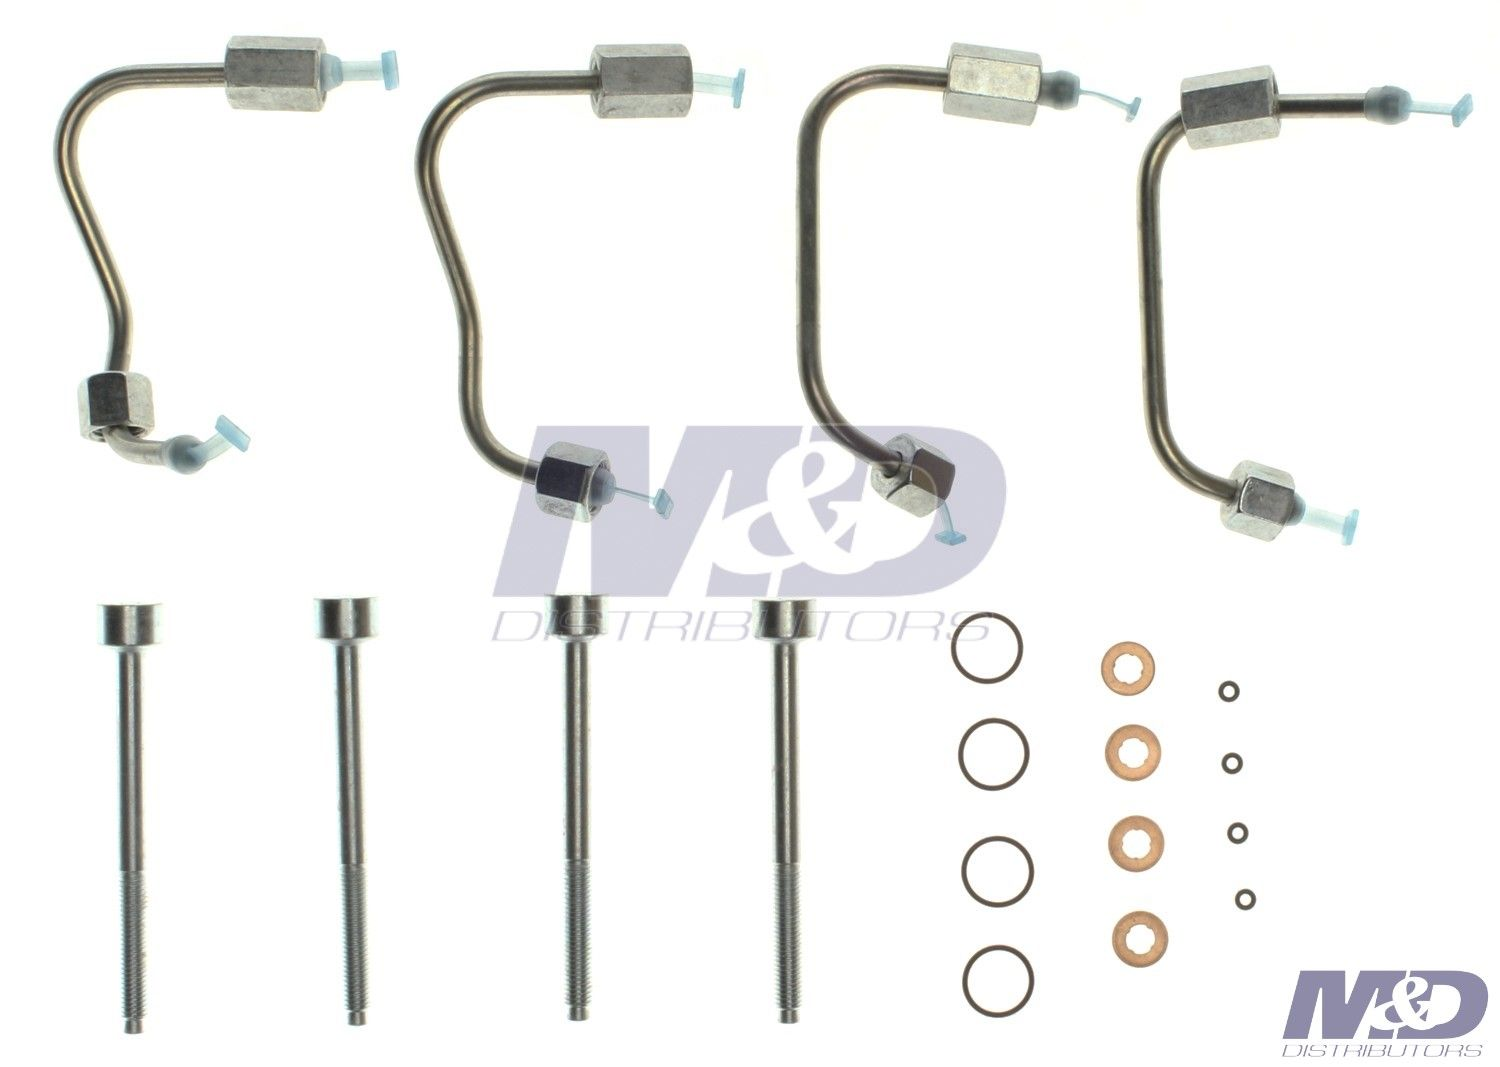 6.7L Power Stroke Single Bank Injection Line & O-Ring Kit|M&D